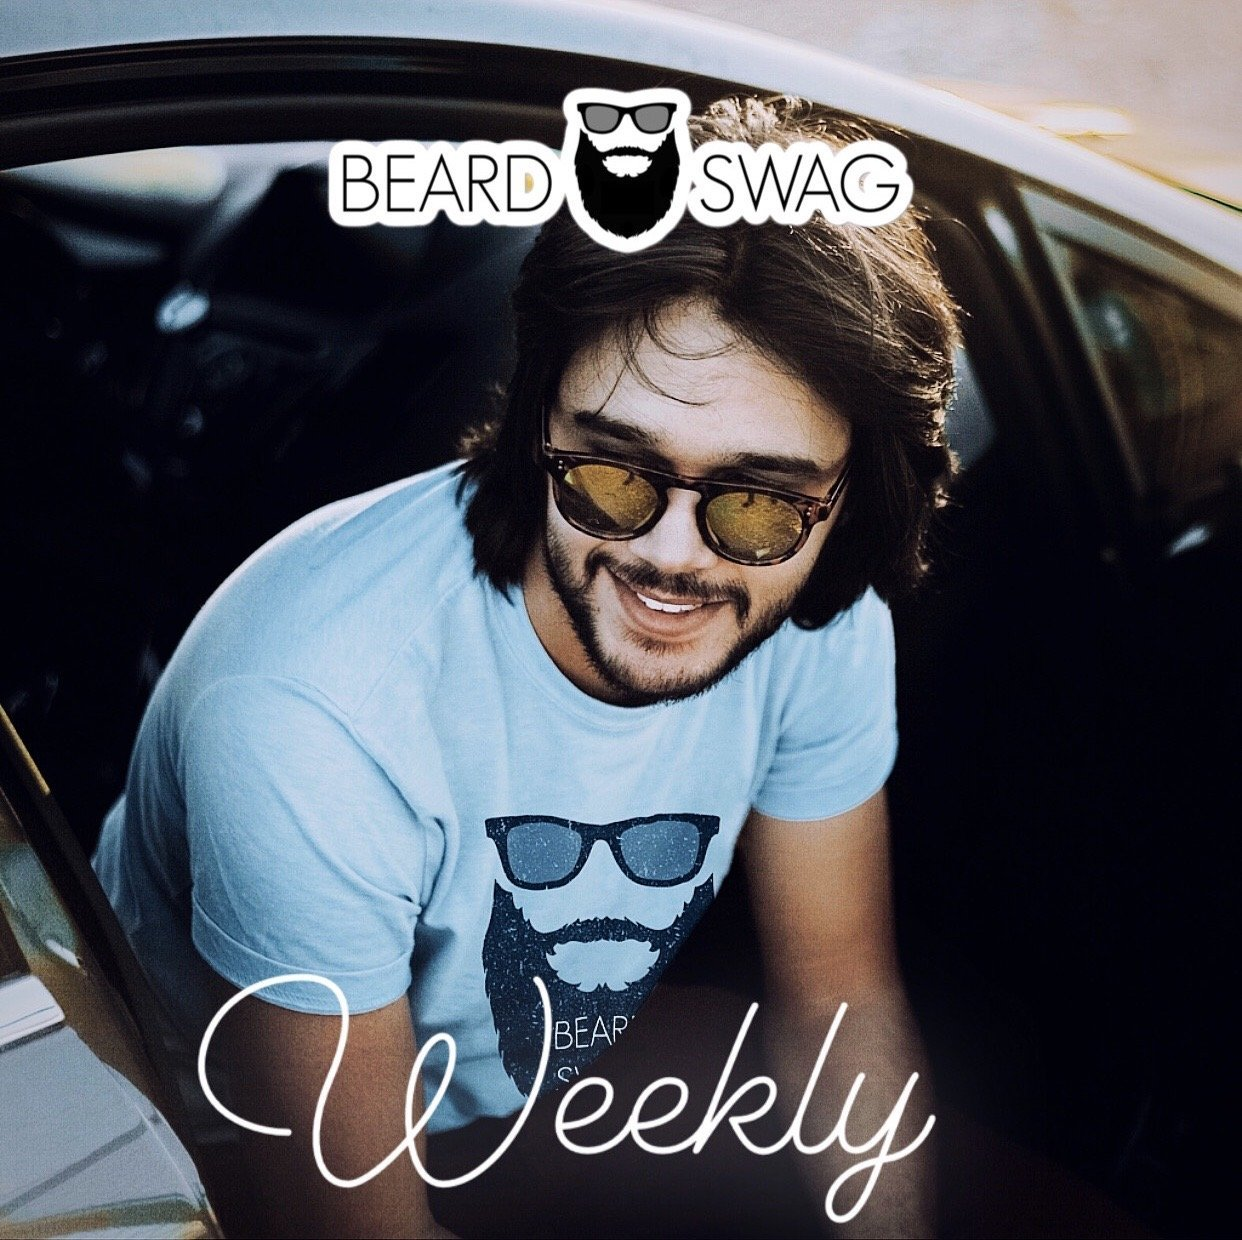 Beard Swag Weekly - Don't Rush | Beard Swag